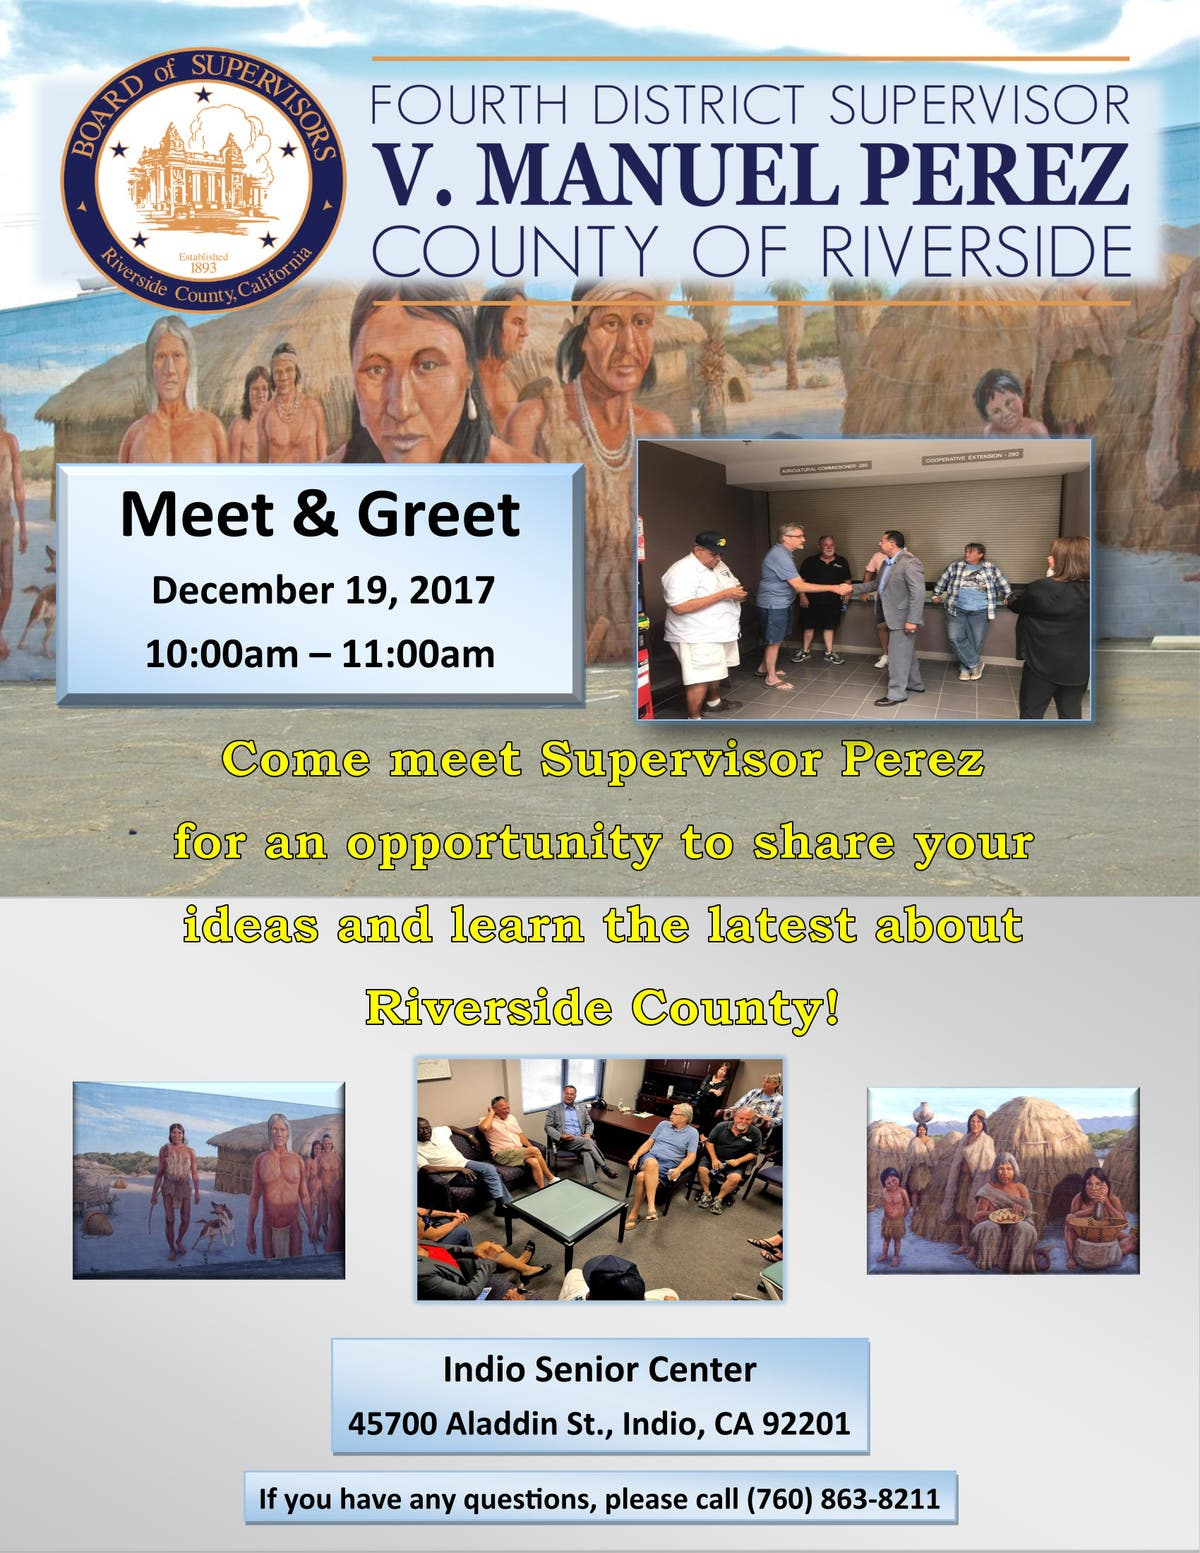 Supervisor perez to hold meet and greet in indio tuesday palm if you live in the indio area please stop by i look forward to meeting you and working closely with you m4hsunfo